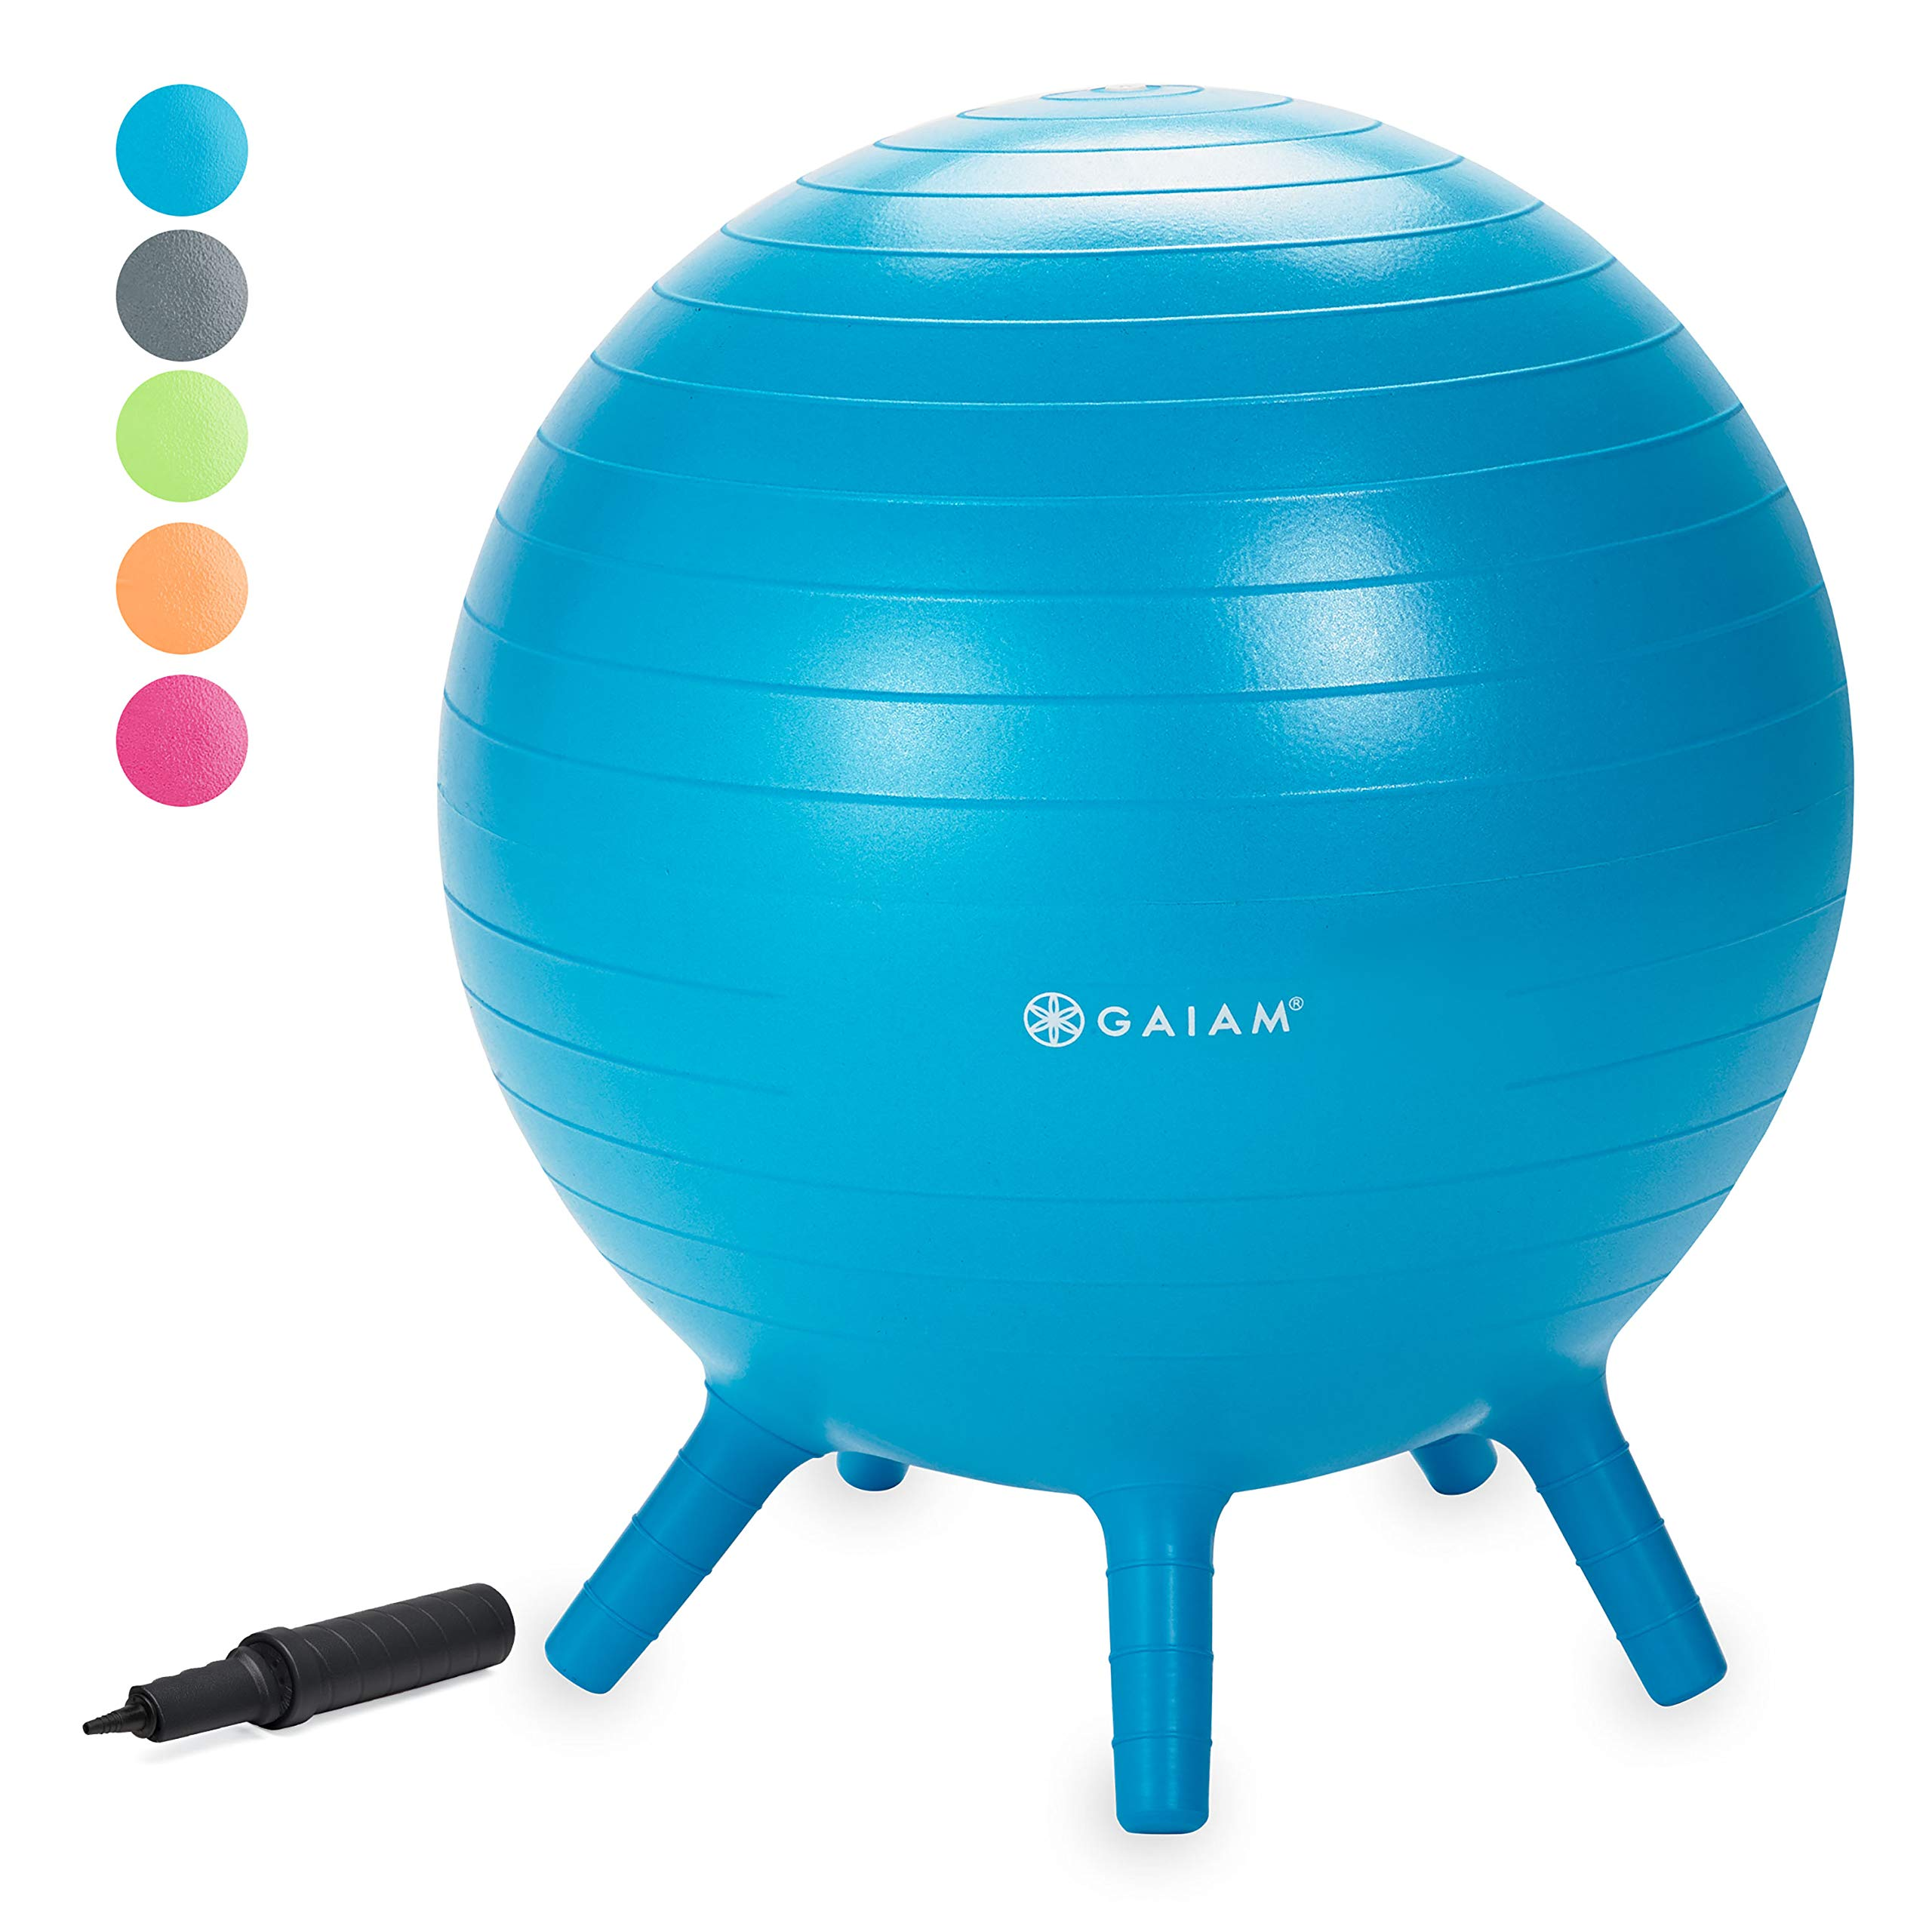 Gaiam Kids Stay-N-Play Children's Balance Ball - Flexible School Chair, Active Classroom Desk Seating with Stay-Put Stability Legs, Includes Air Pump, Blue, 45cm by Gaiam